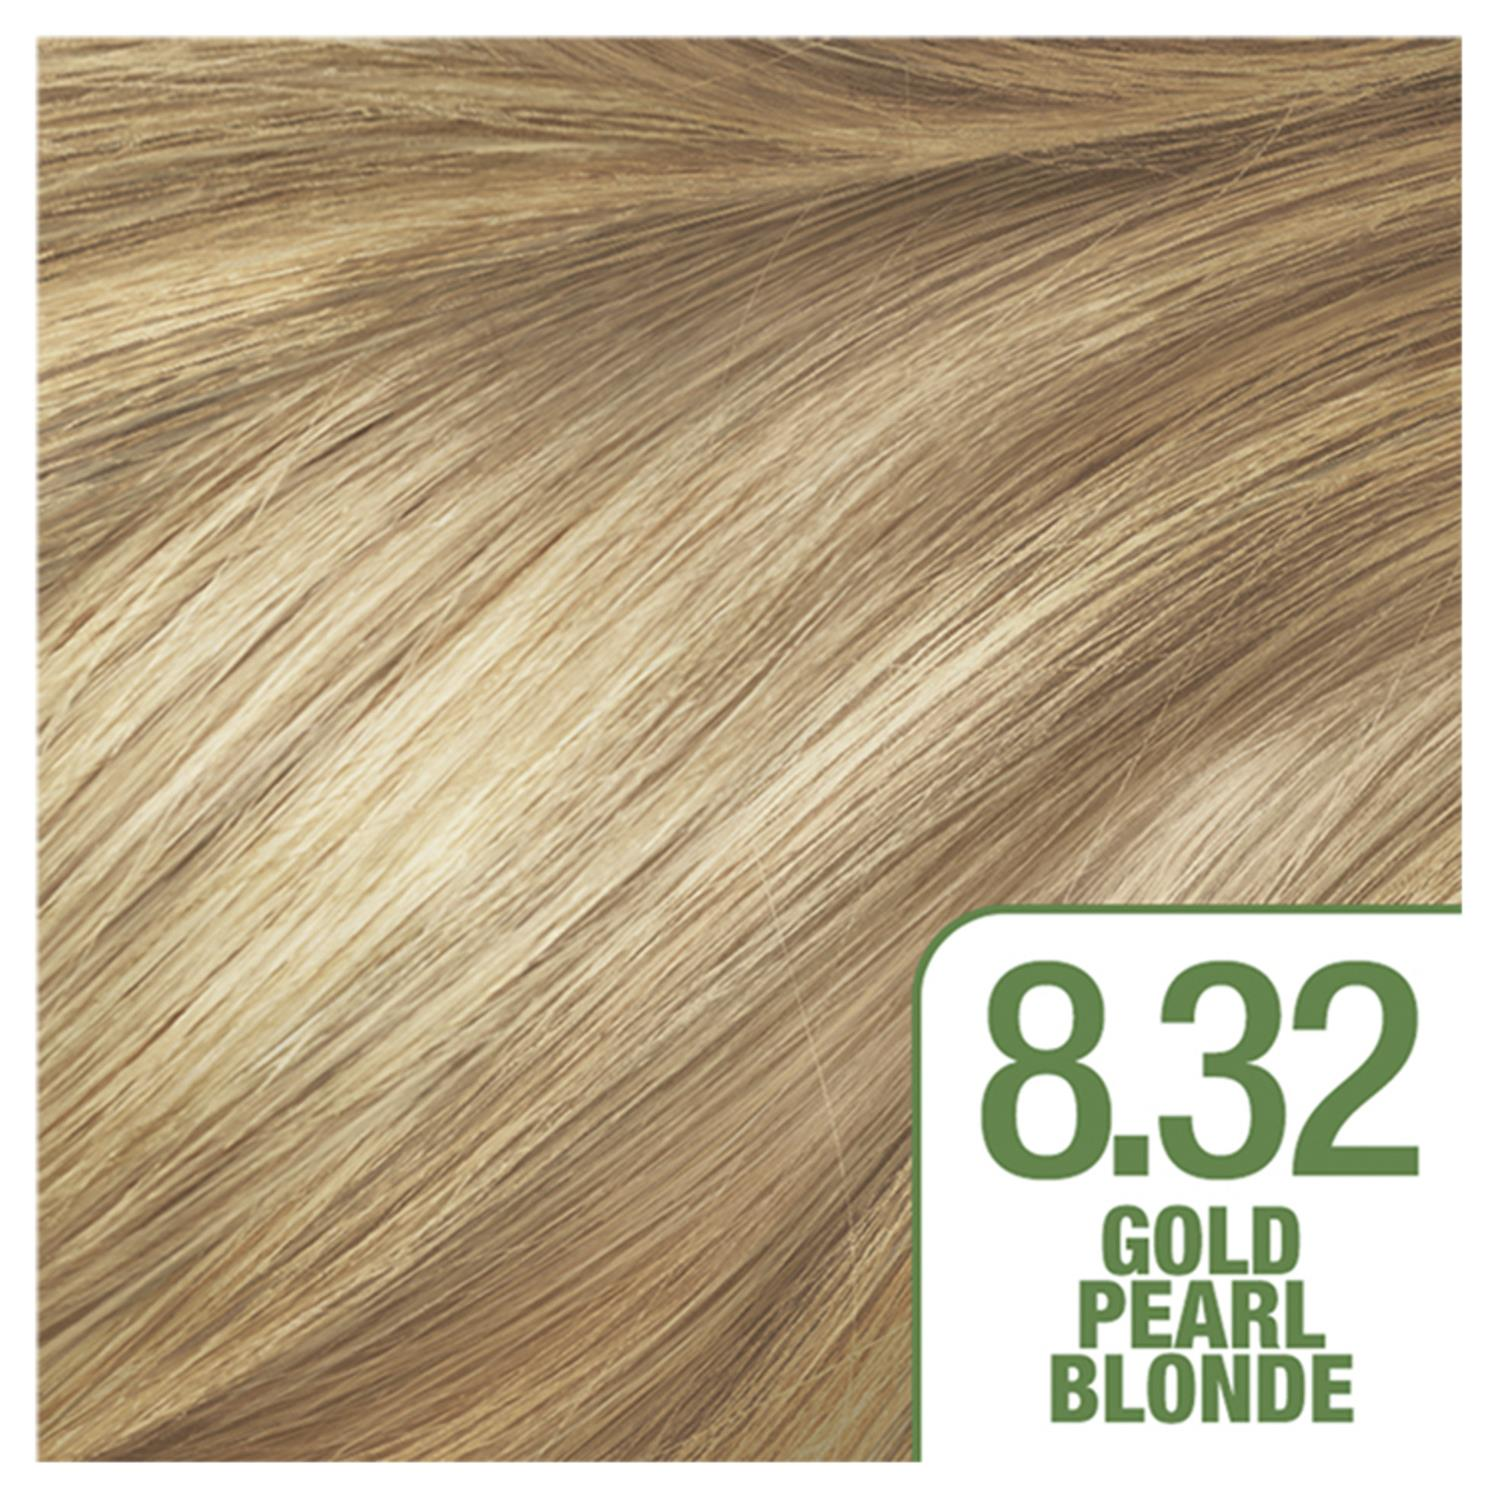 thumbnail 270 - 3 Pack Garnier Nutrisse Permanent Hair Dye With Different Shades